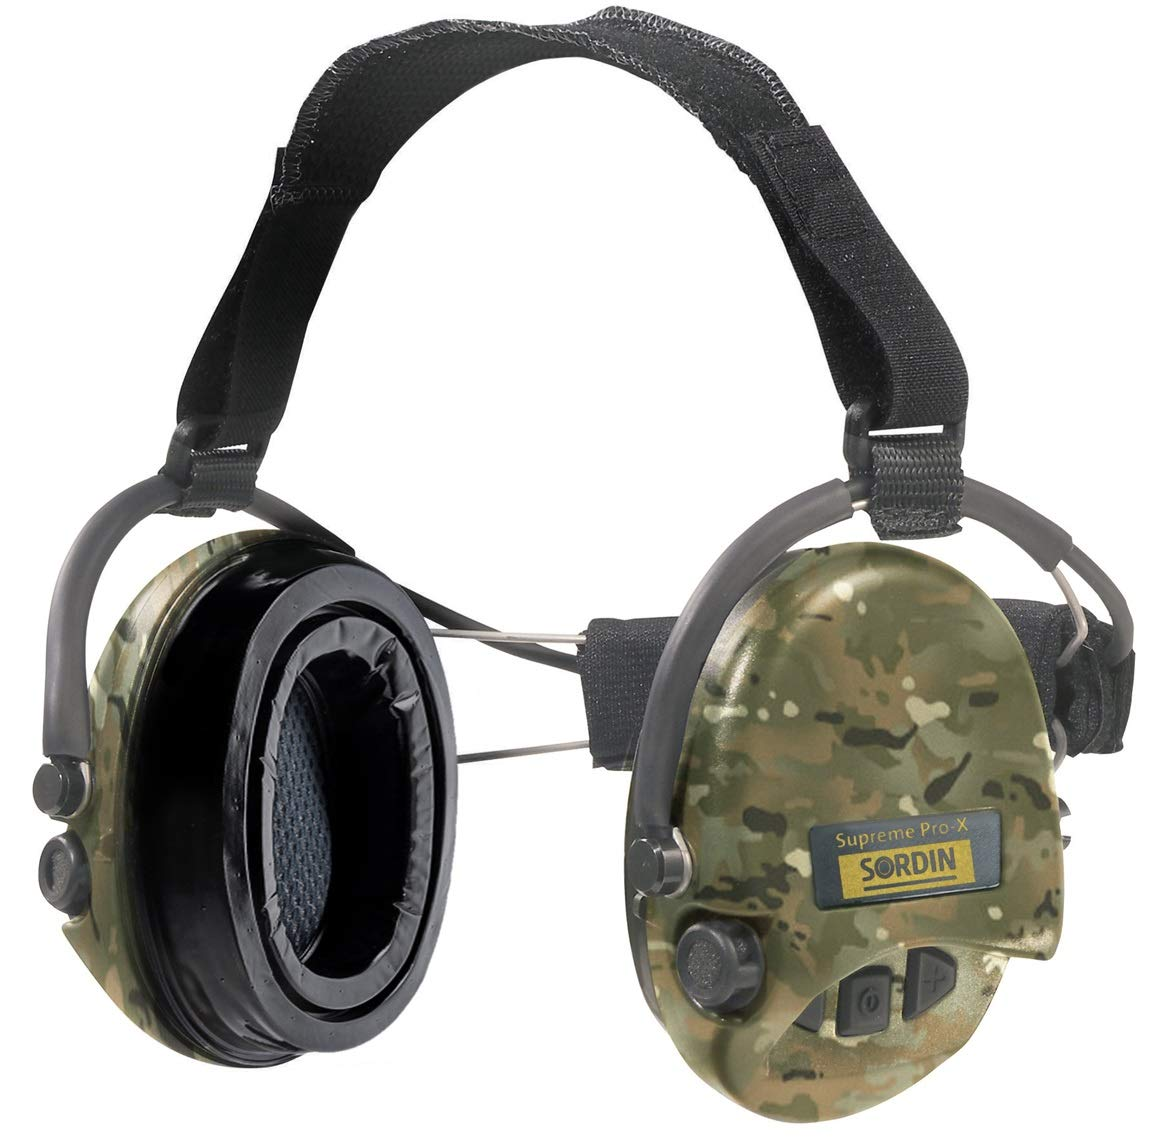 Sordin Supreme PRO X - Electronic Safety Earmuff for Shooting with Neckband - Hearing Protection with Camo Cups - SNR: 25db